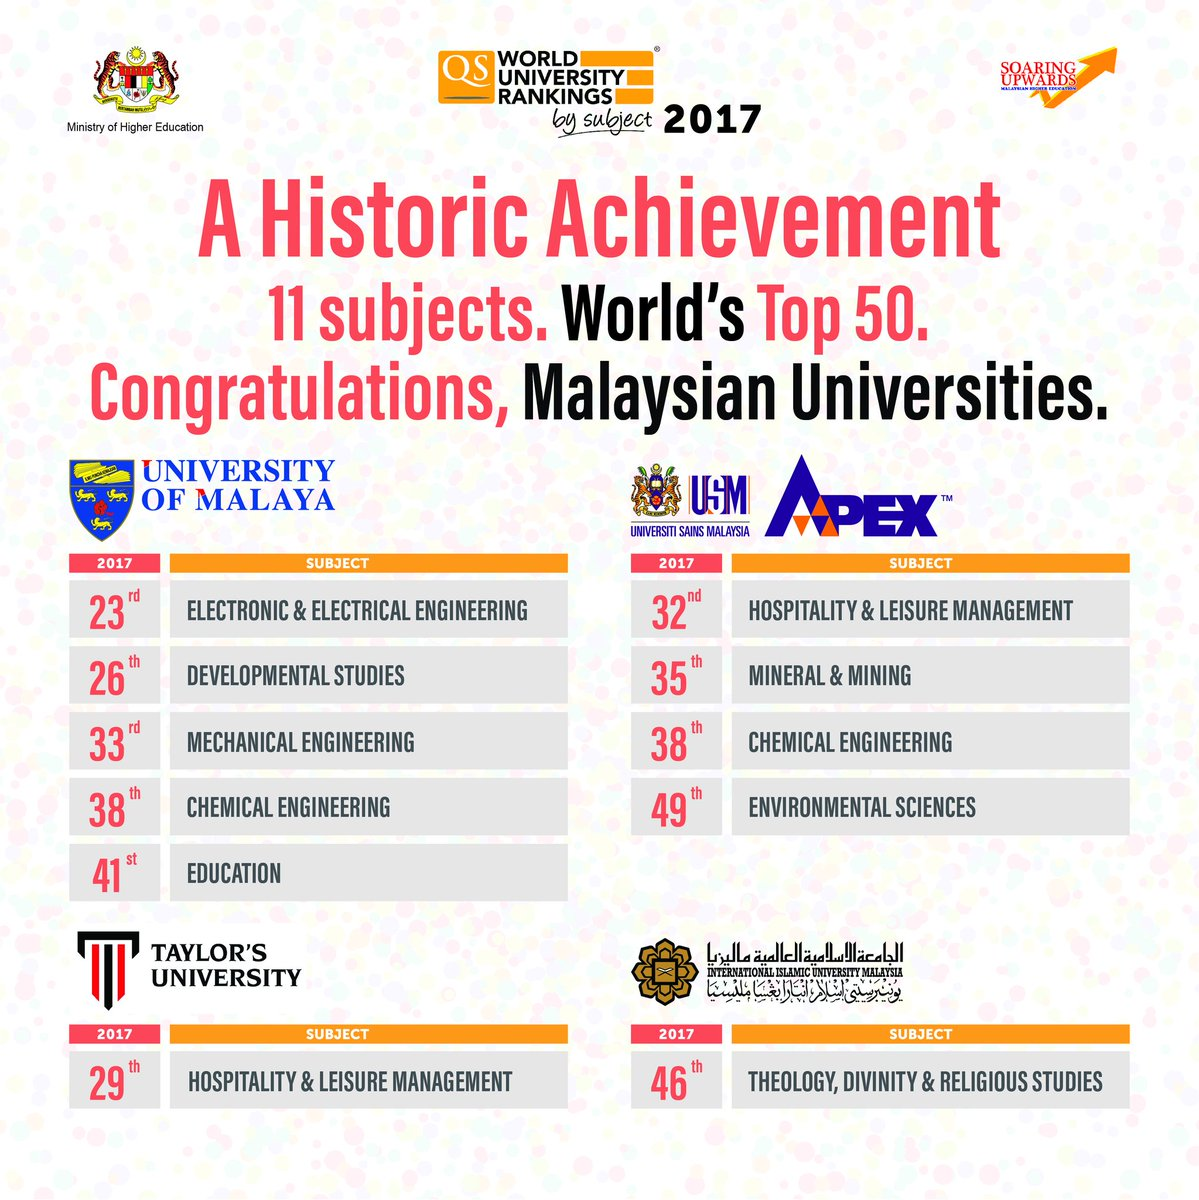 Idris Jusoh On Twitter Qs World University Ranking By Subject By 2017 Alhamdulillah Congratulations To Our Universities For Their Stellar Performance Https T Co Nct2axxumi